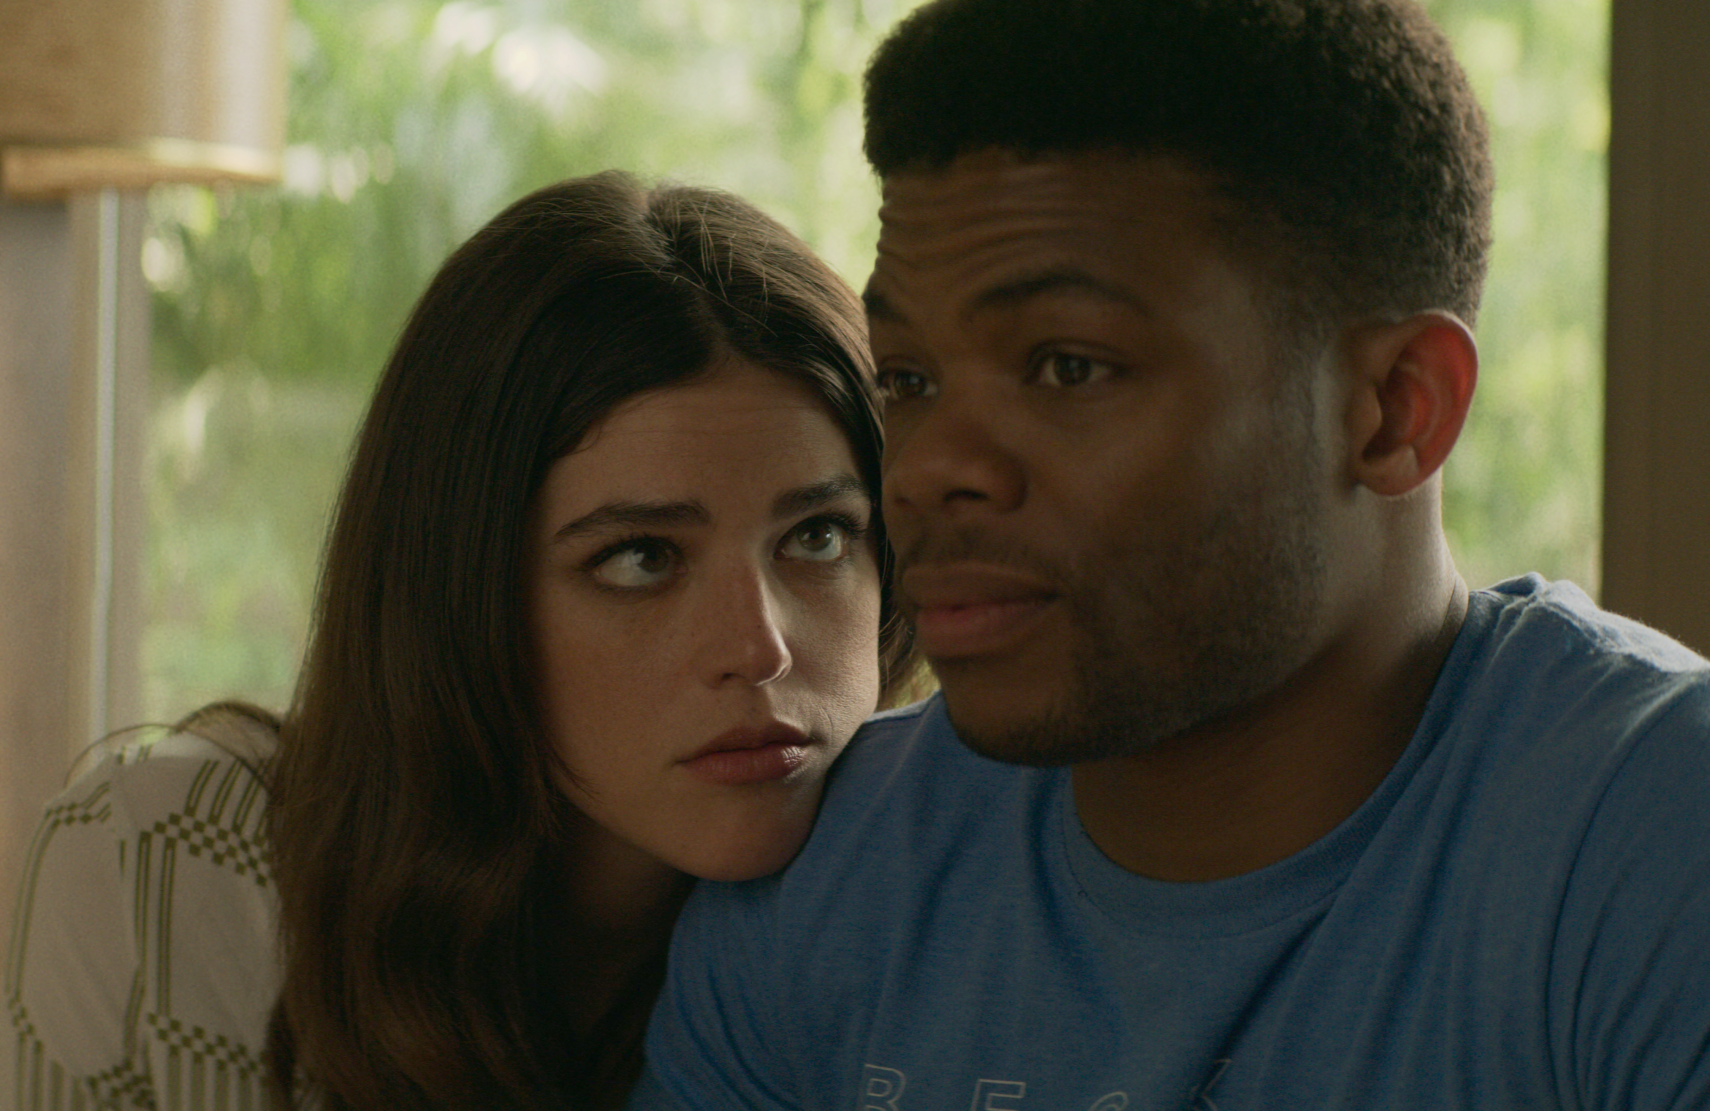 Nellie (Callie Hernandez) wonders what Sam (Paul James) is thinking. Cue the music! (Netflix)